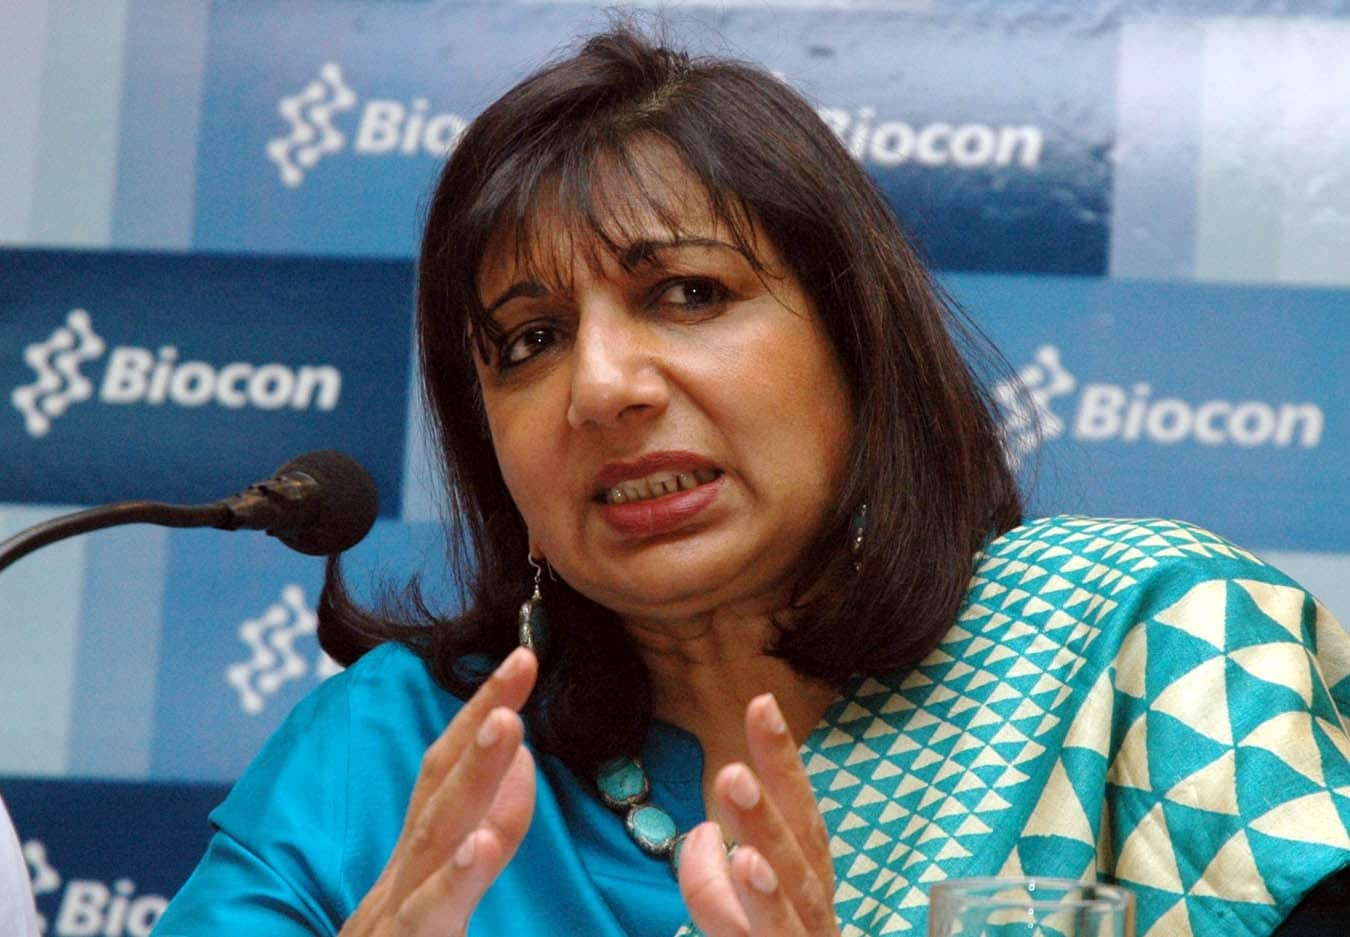 Kiran Mazumdar-Shaw: Net Worth: $3.4 billion. Kiran Mazumdar-Shaw is an Indian billionaire entrepreneur. She is the chairperson and managing director of Biocon Limited, a biotechnology company based in Bangalore, India and the chairperson of Indian Institute of Management Bangalore.